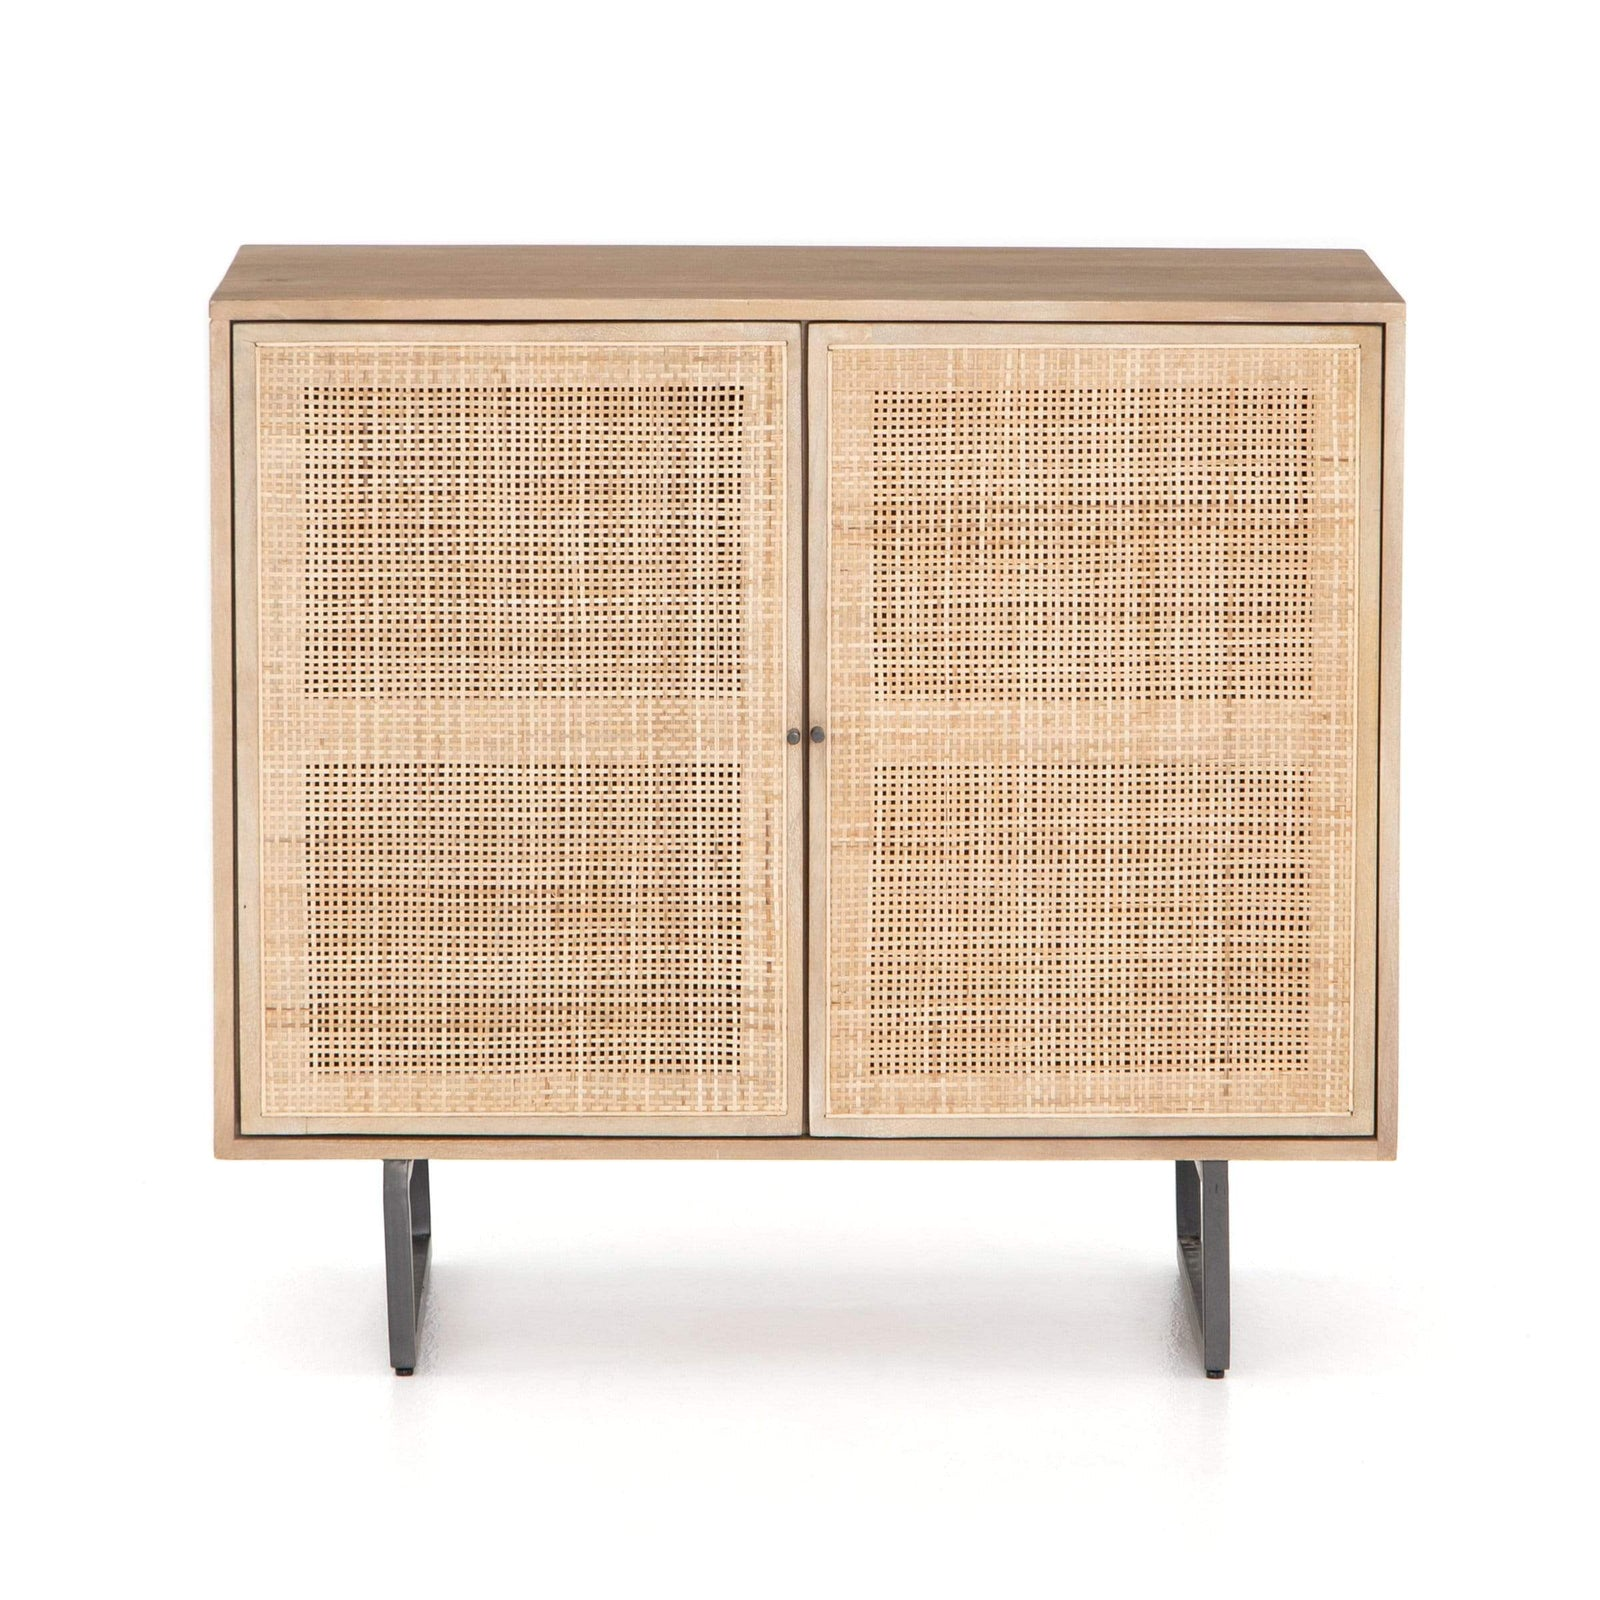 Four Hands Furniture Carmel Small Cabinet